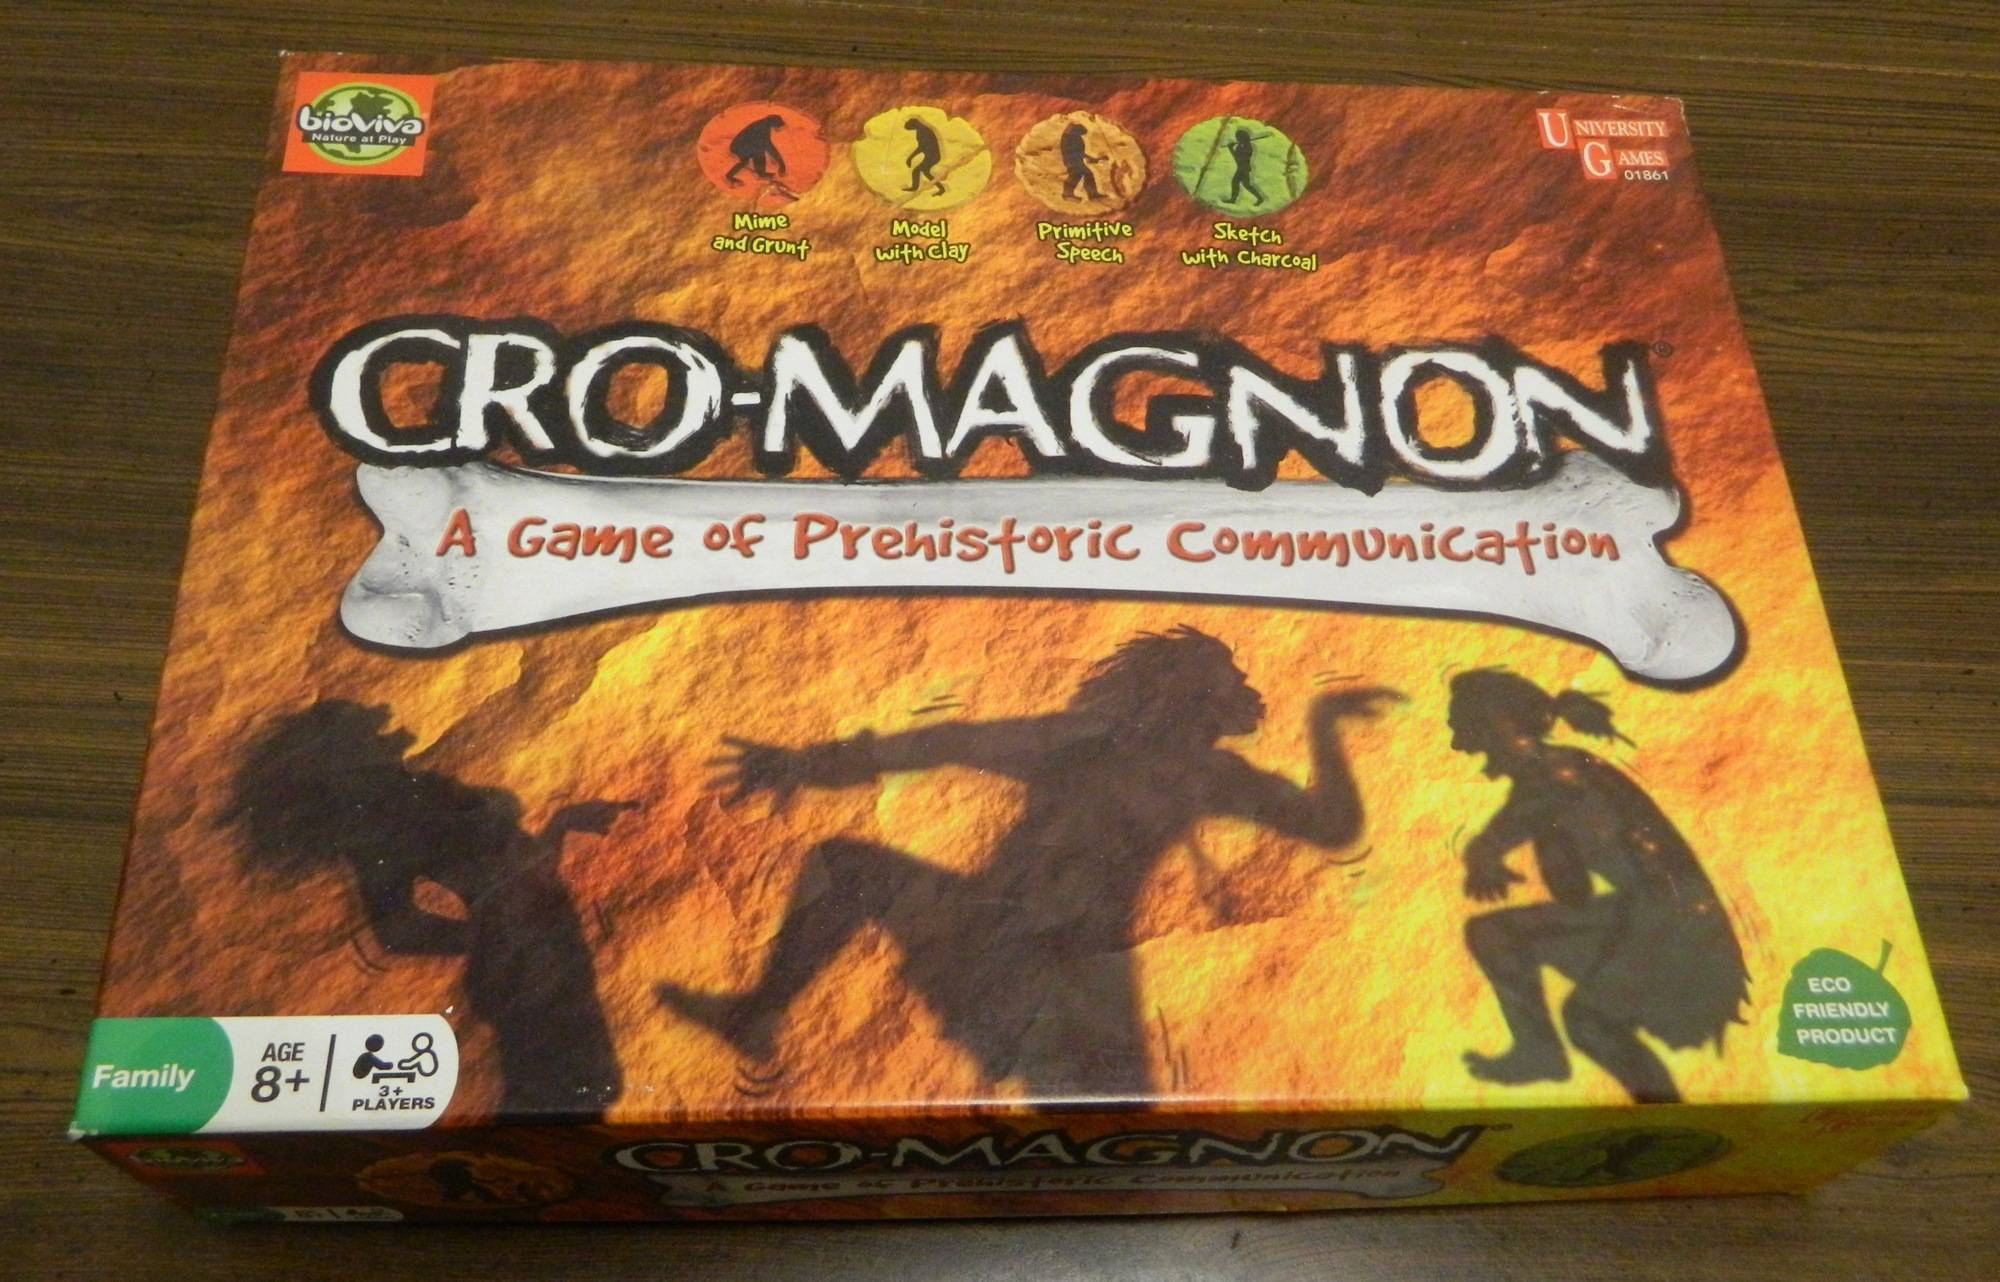 Box for Cro-Magnon